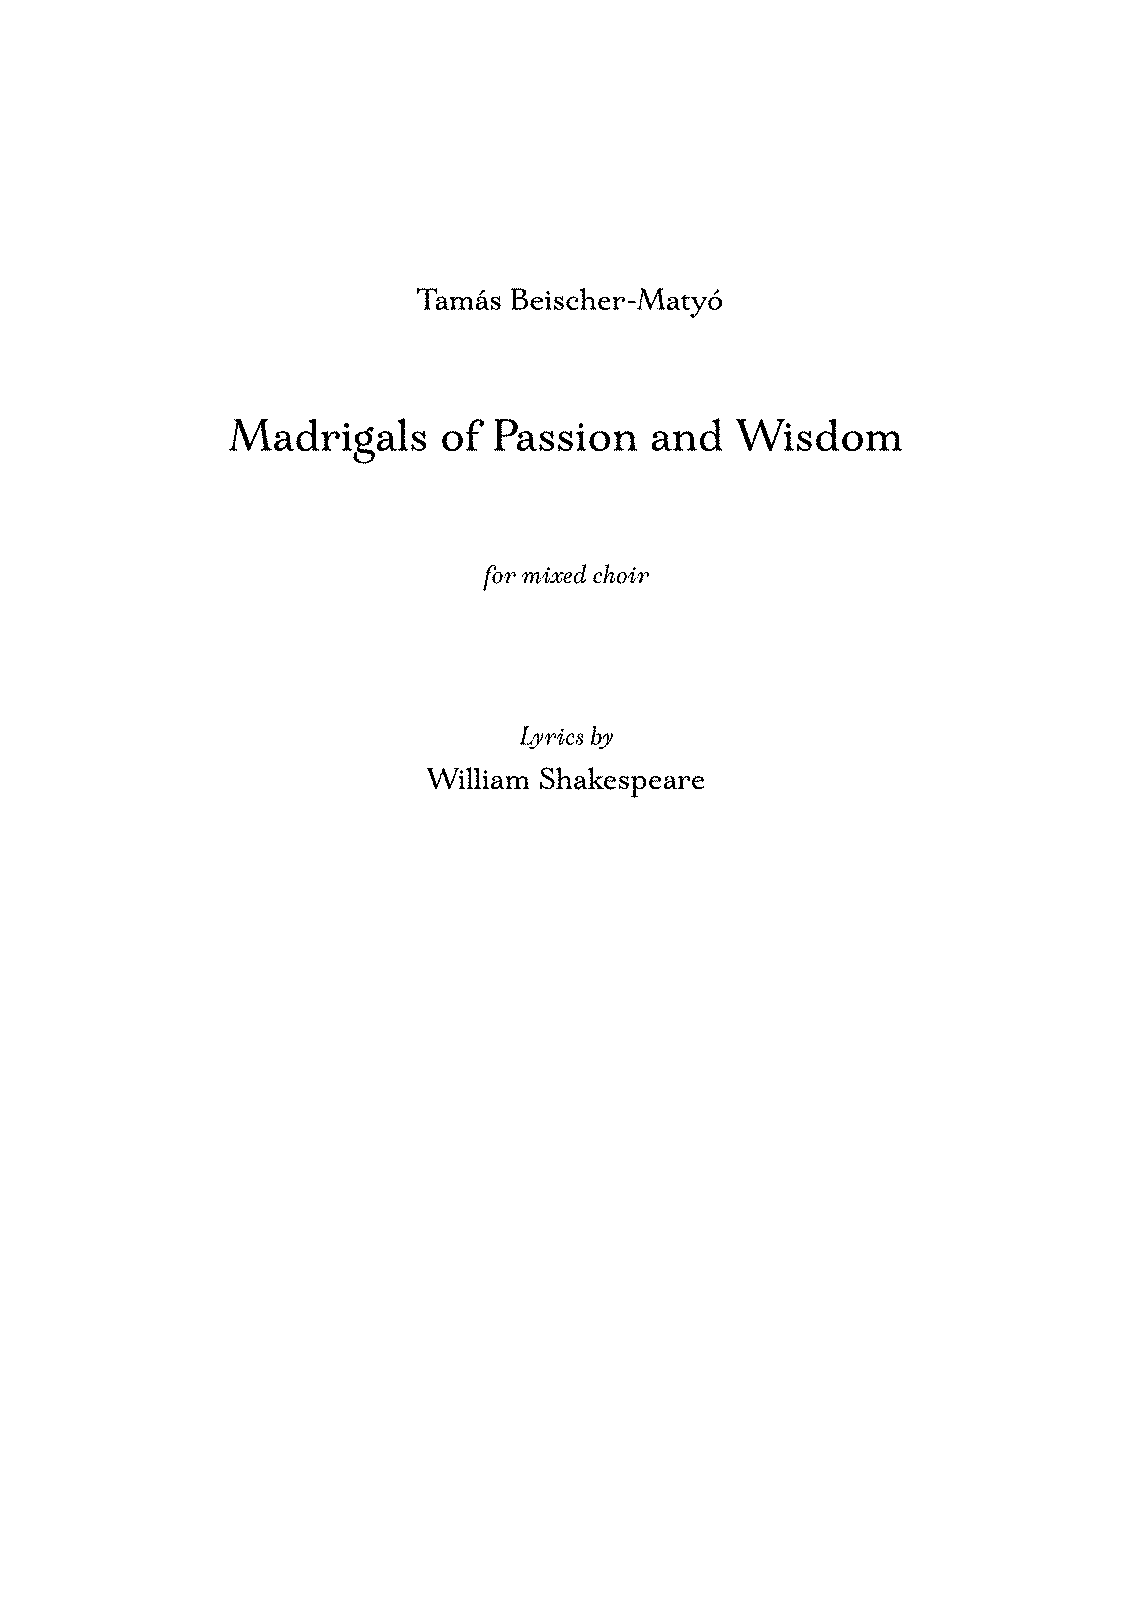 PMLP635162-madrigals of passion and wisdom complete score cc.pdf